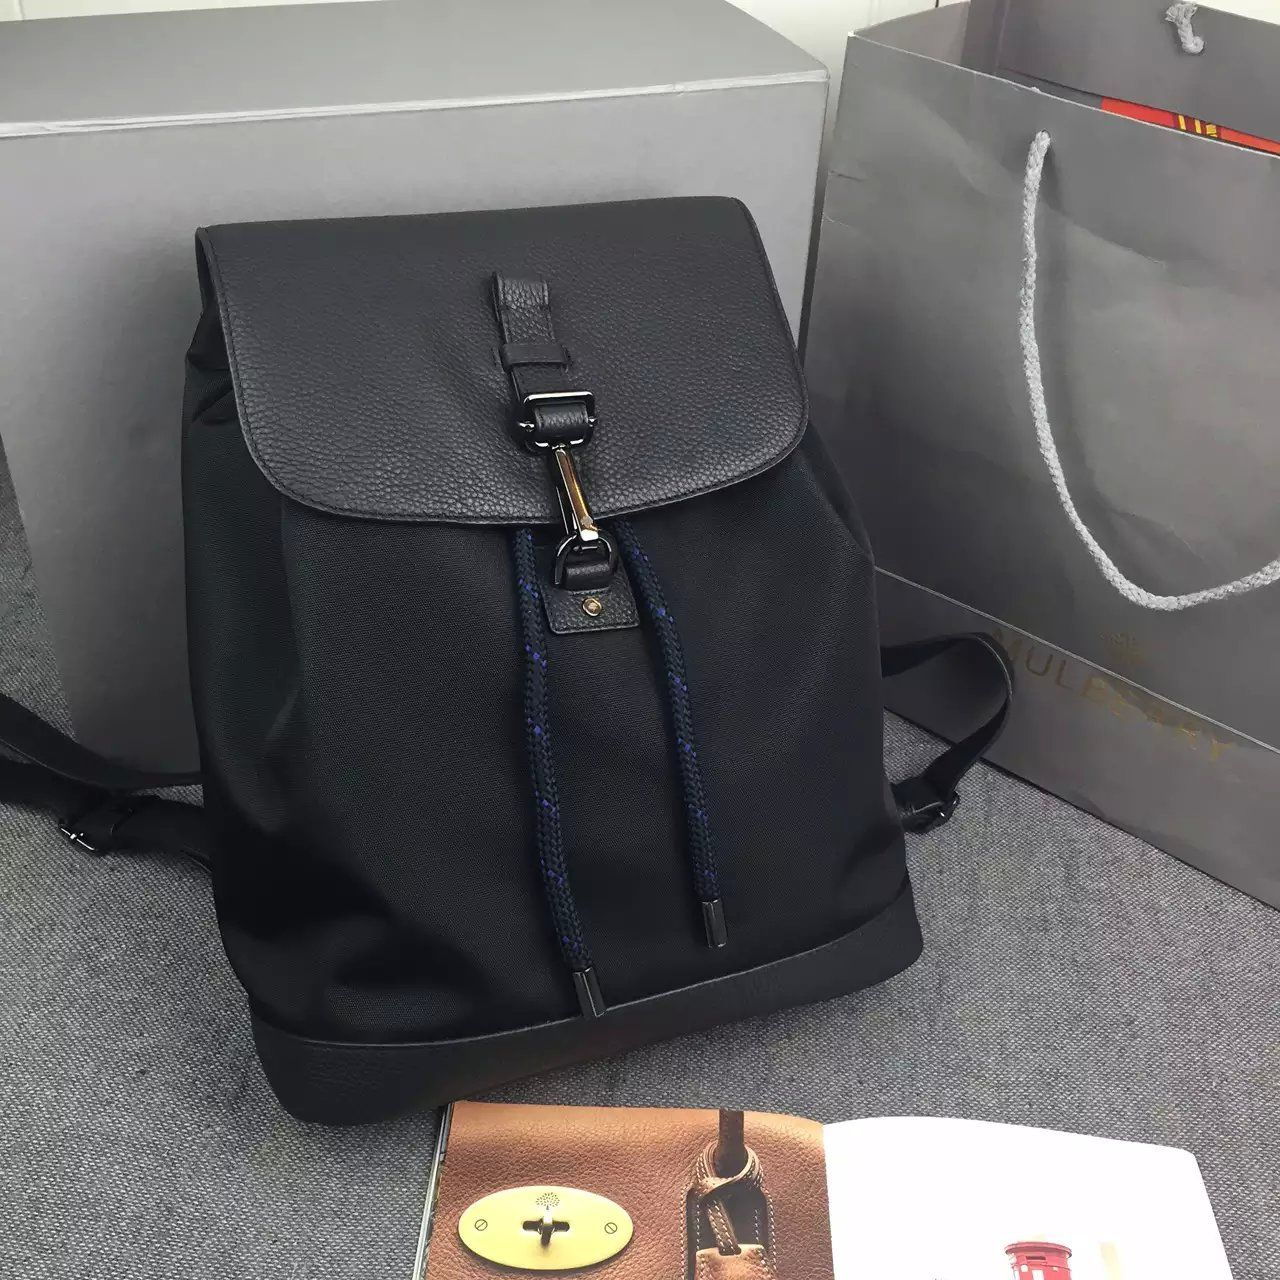 832d2748189f New Edition!2016 Mulberry Handbags Collection Outlet UK-Mulberry Small  Marty Backpack Black Calfskin